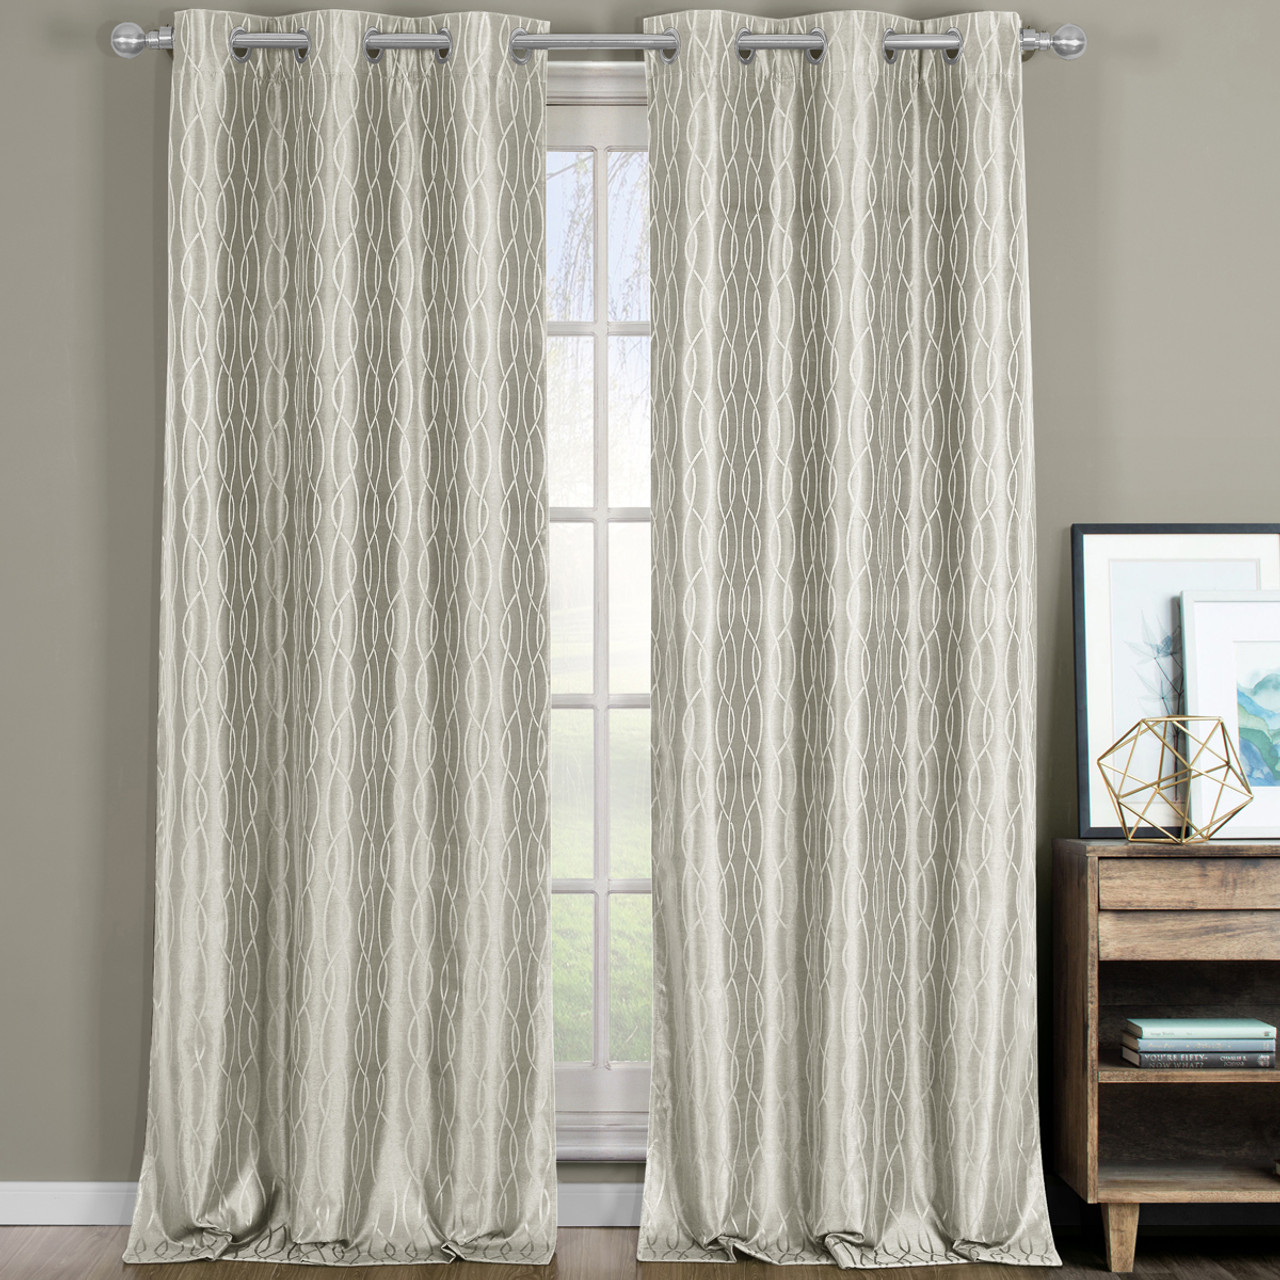 Voyage Thermal Blackout Curtains With Grommets Set Of 2 Panels